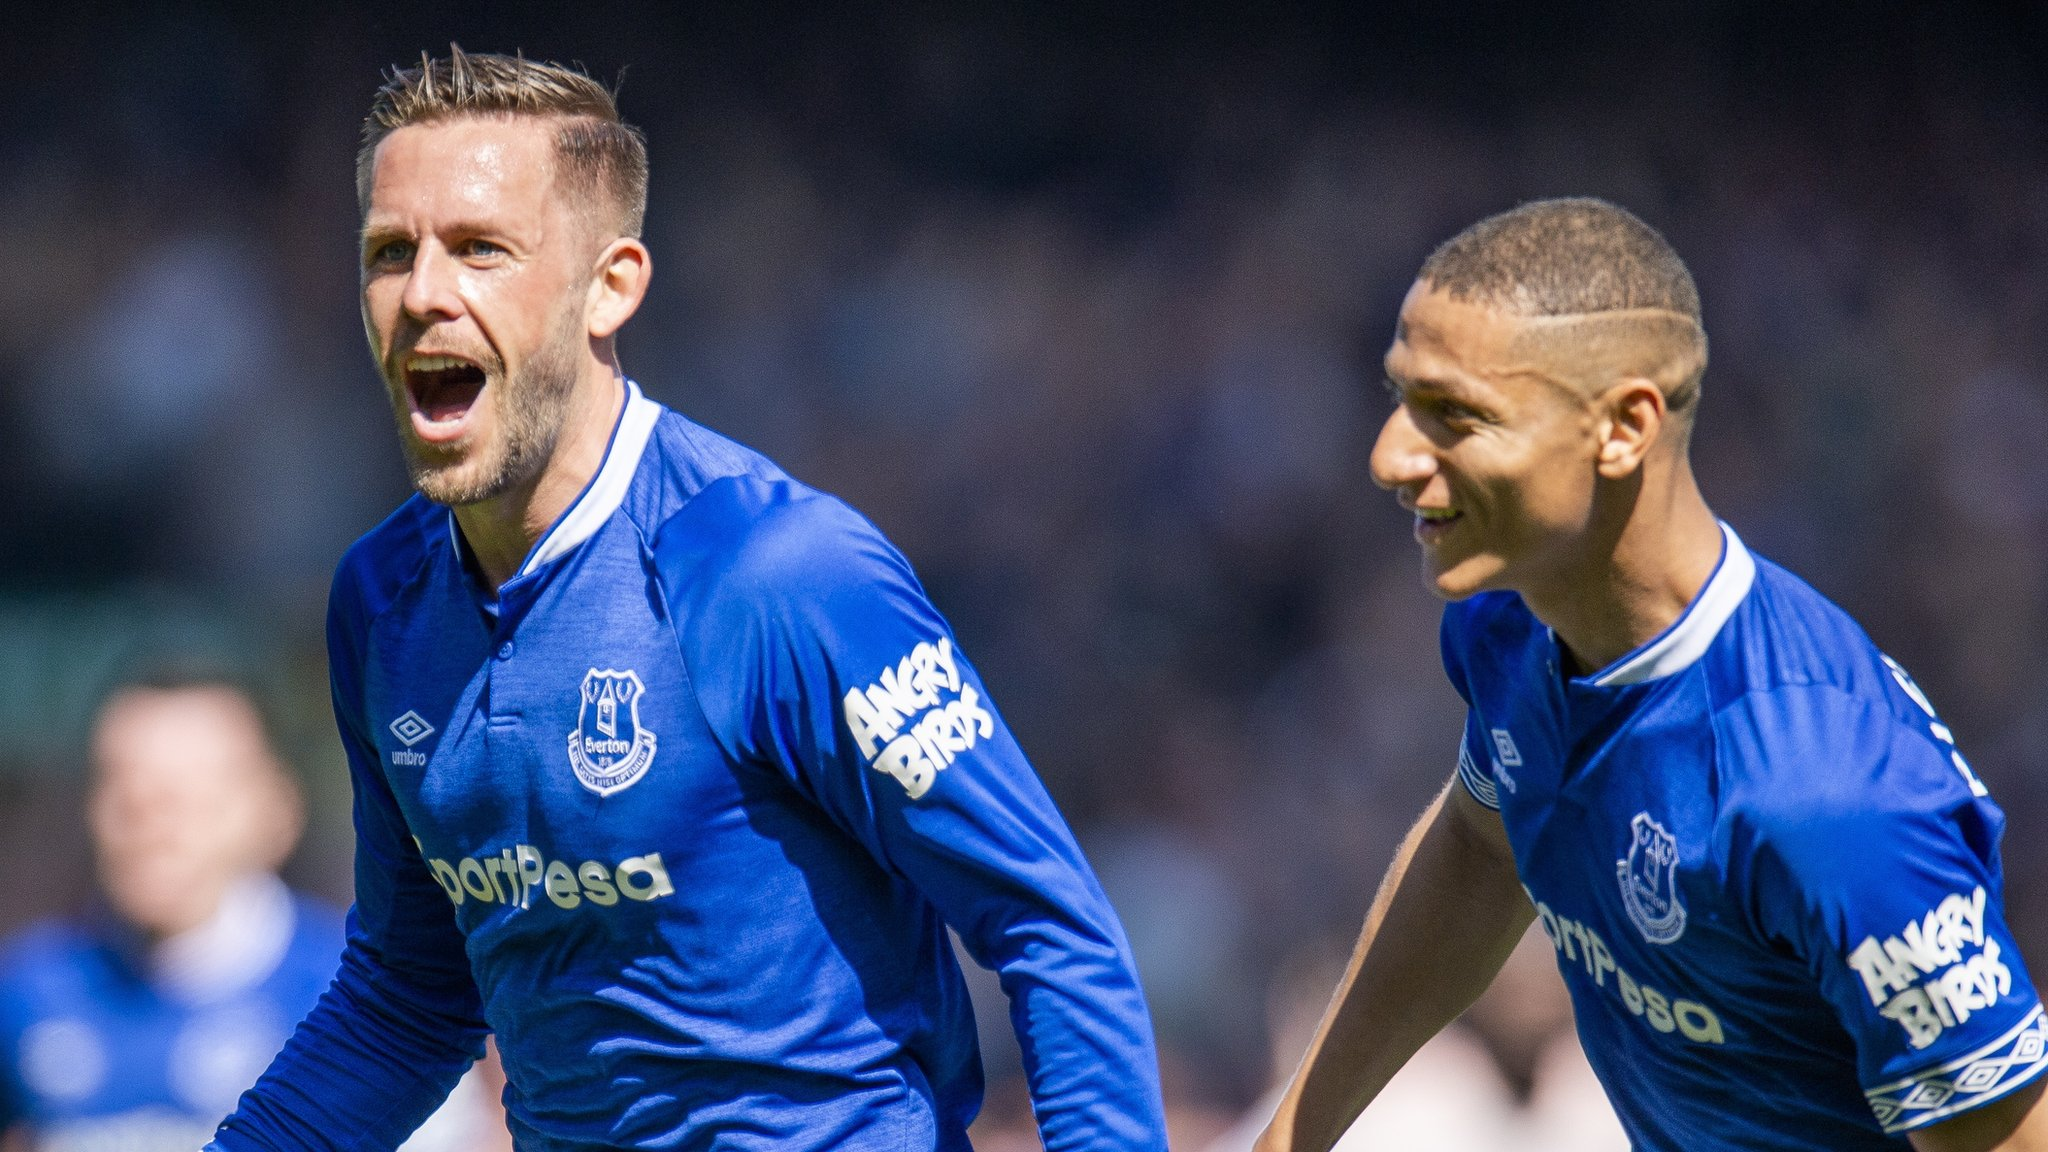 Everton 4-0 Manchester United: Toffees cruise to victory